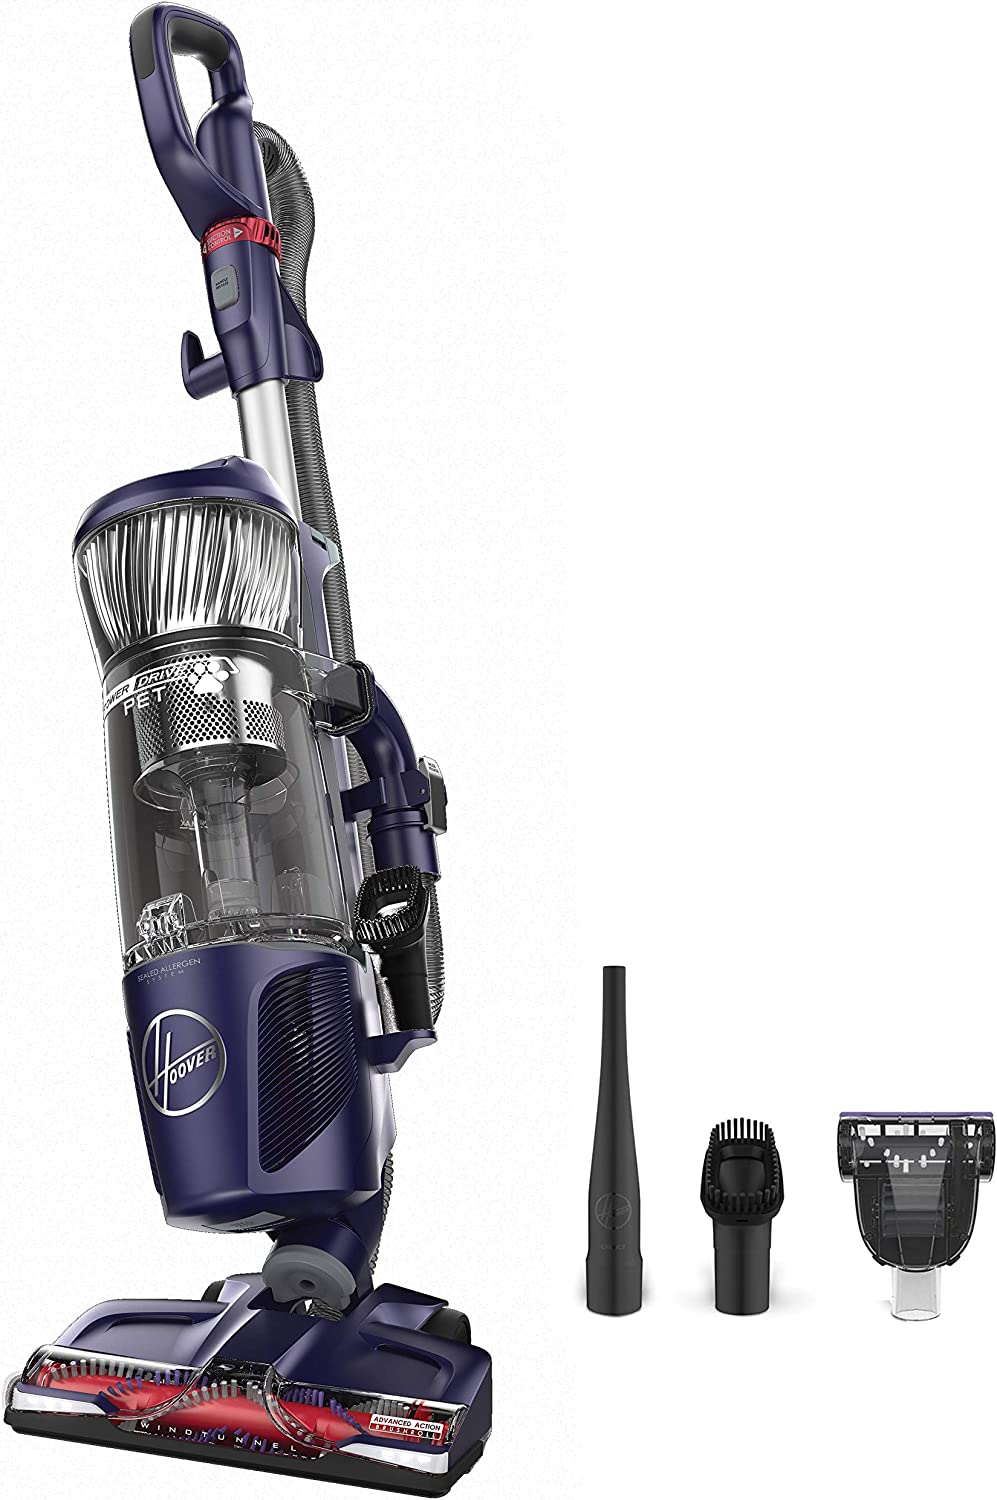 Hoover Power Drive Pet Bagless Multi Floor Upright Vacuum Cleaner with Swivel Steering, UH74210PC, Purple